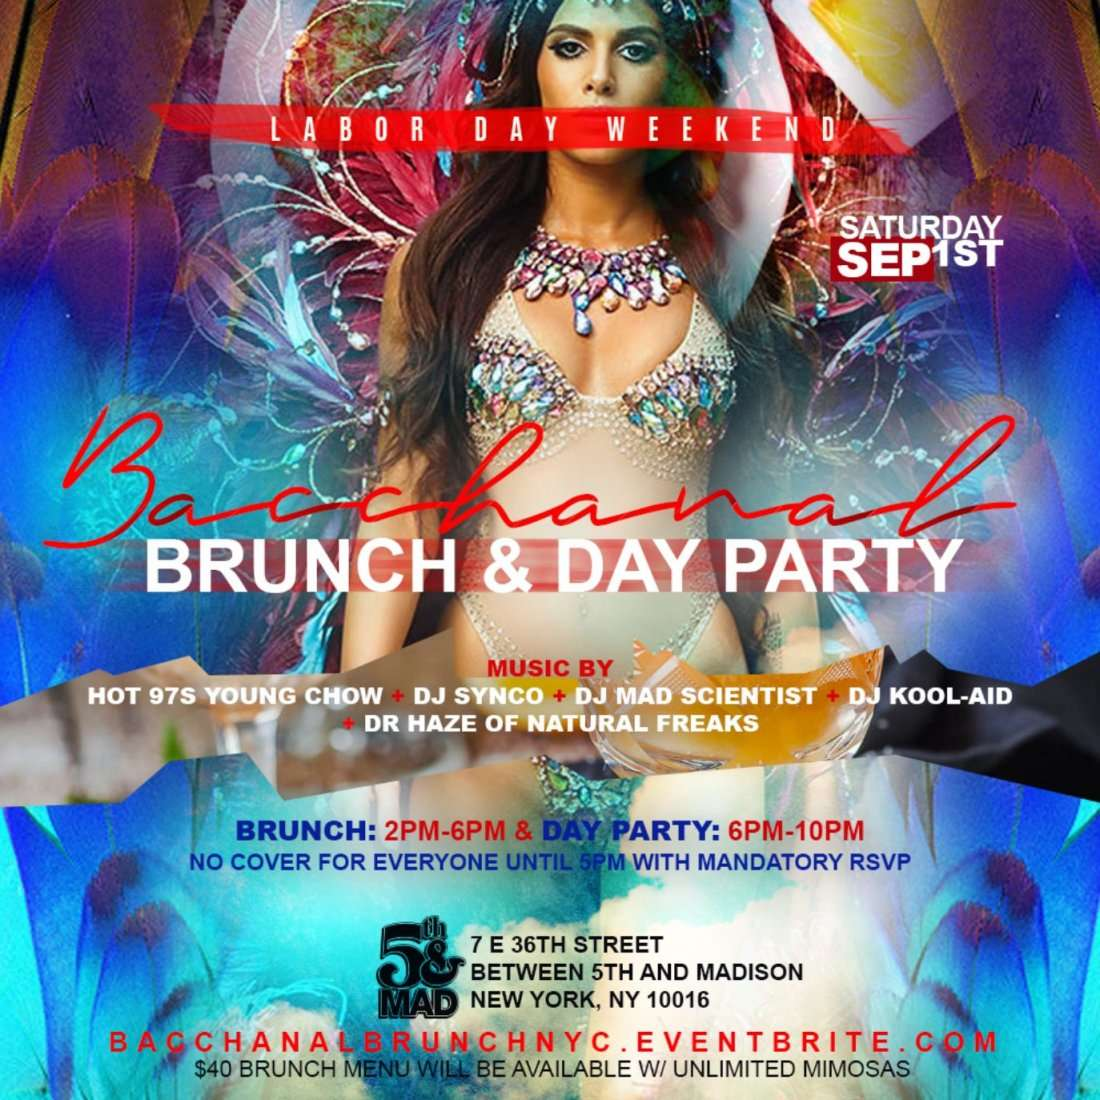 Bacchanal Brunch  Day Party